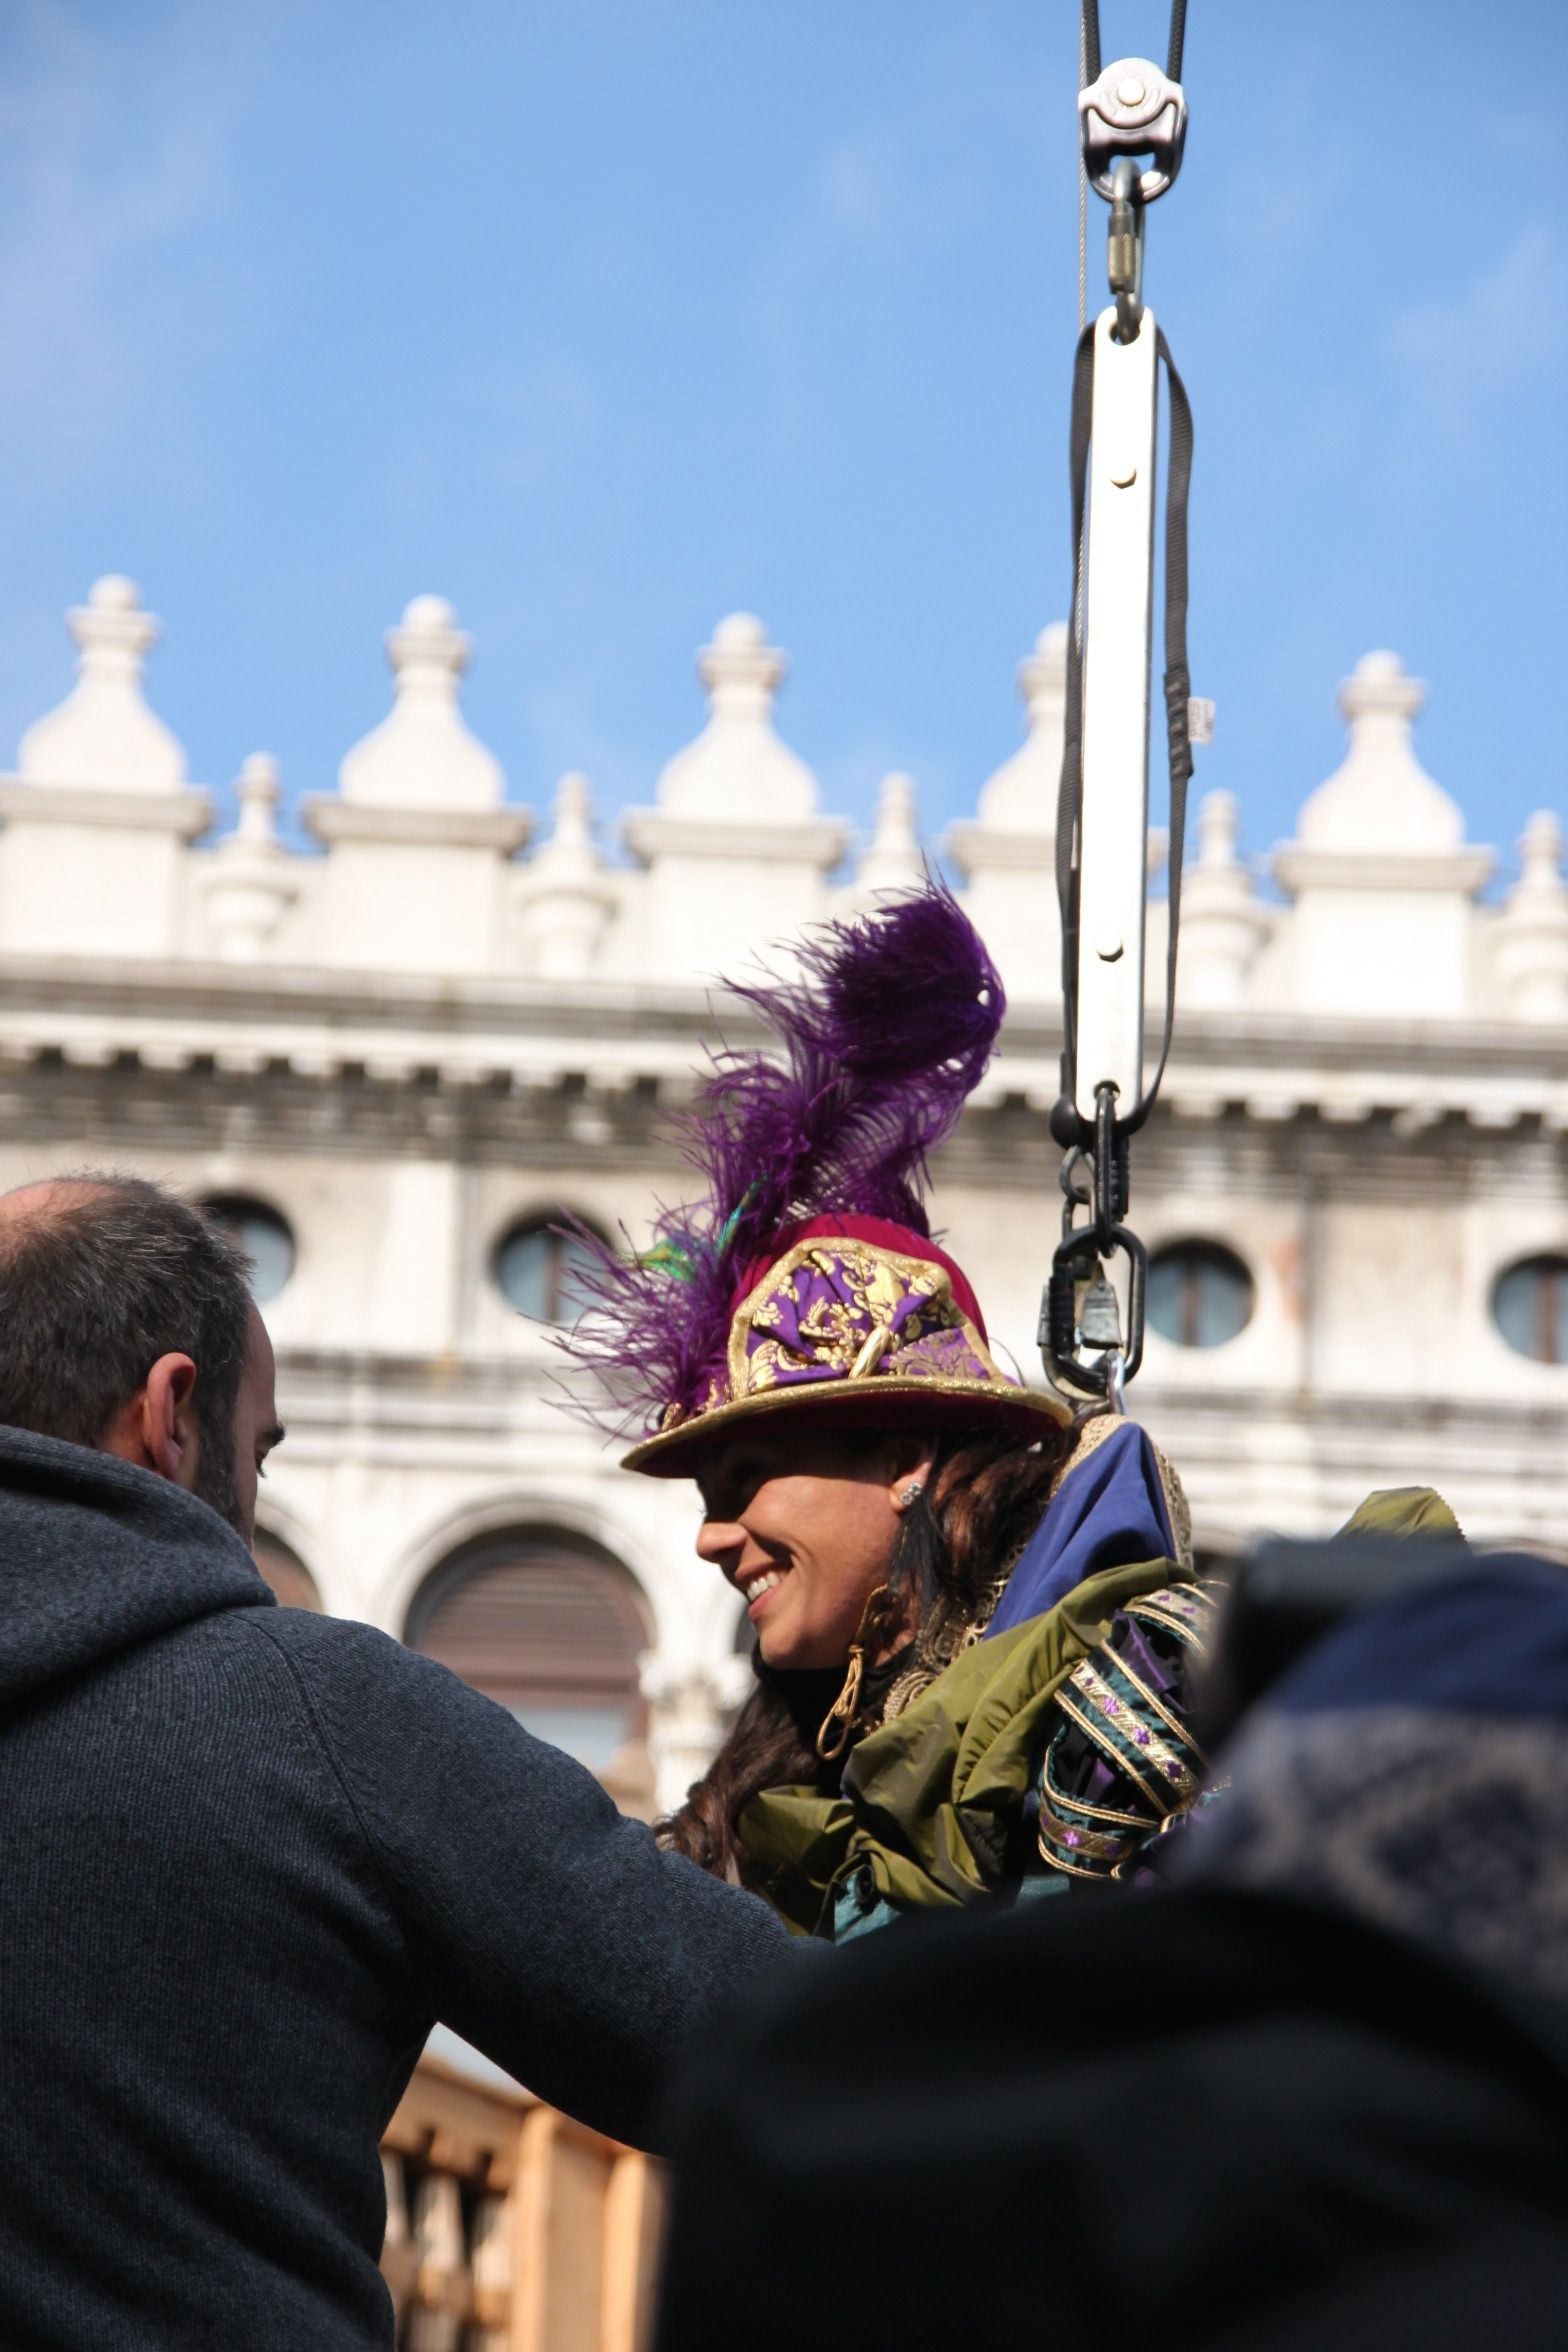 Just landed - Venice's carnival flight of the eagle in St Mark's Square!